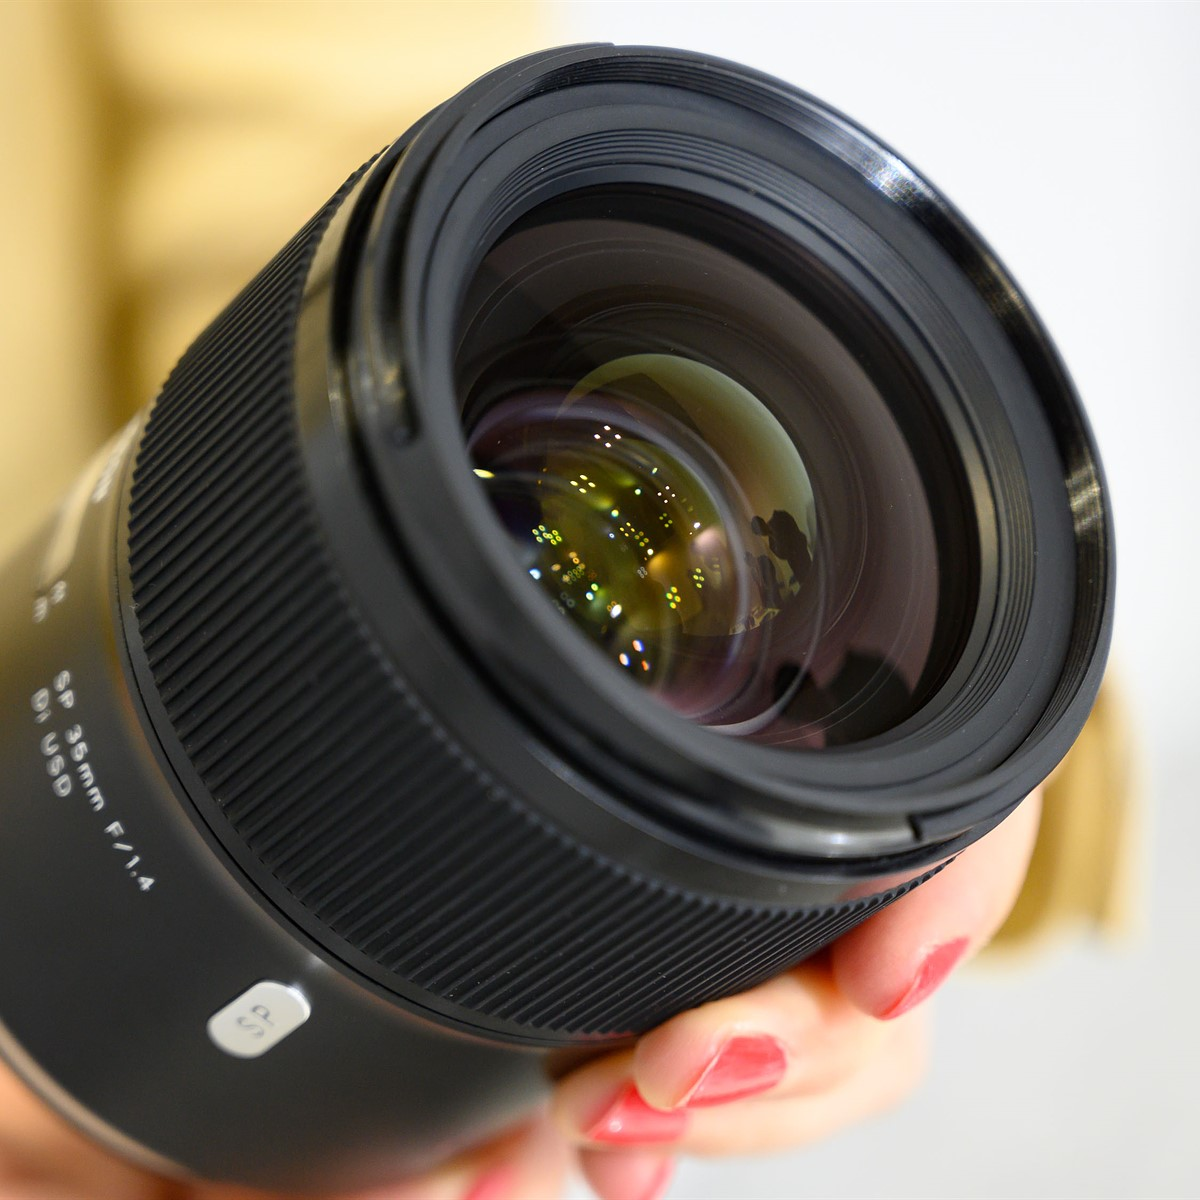 Tamron issues compatibility notices for lenses adapted to Canon